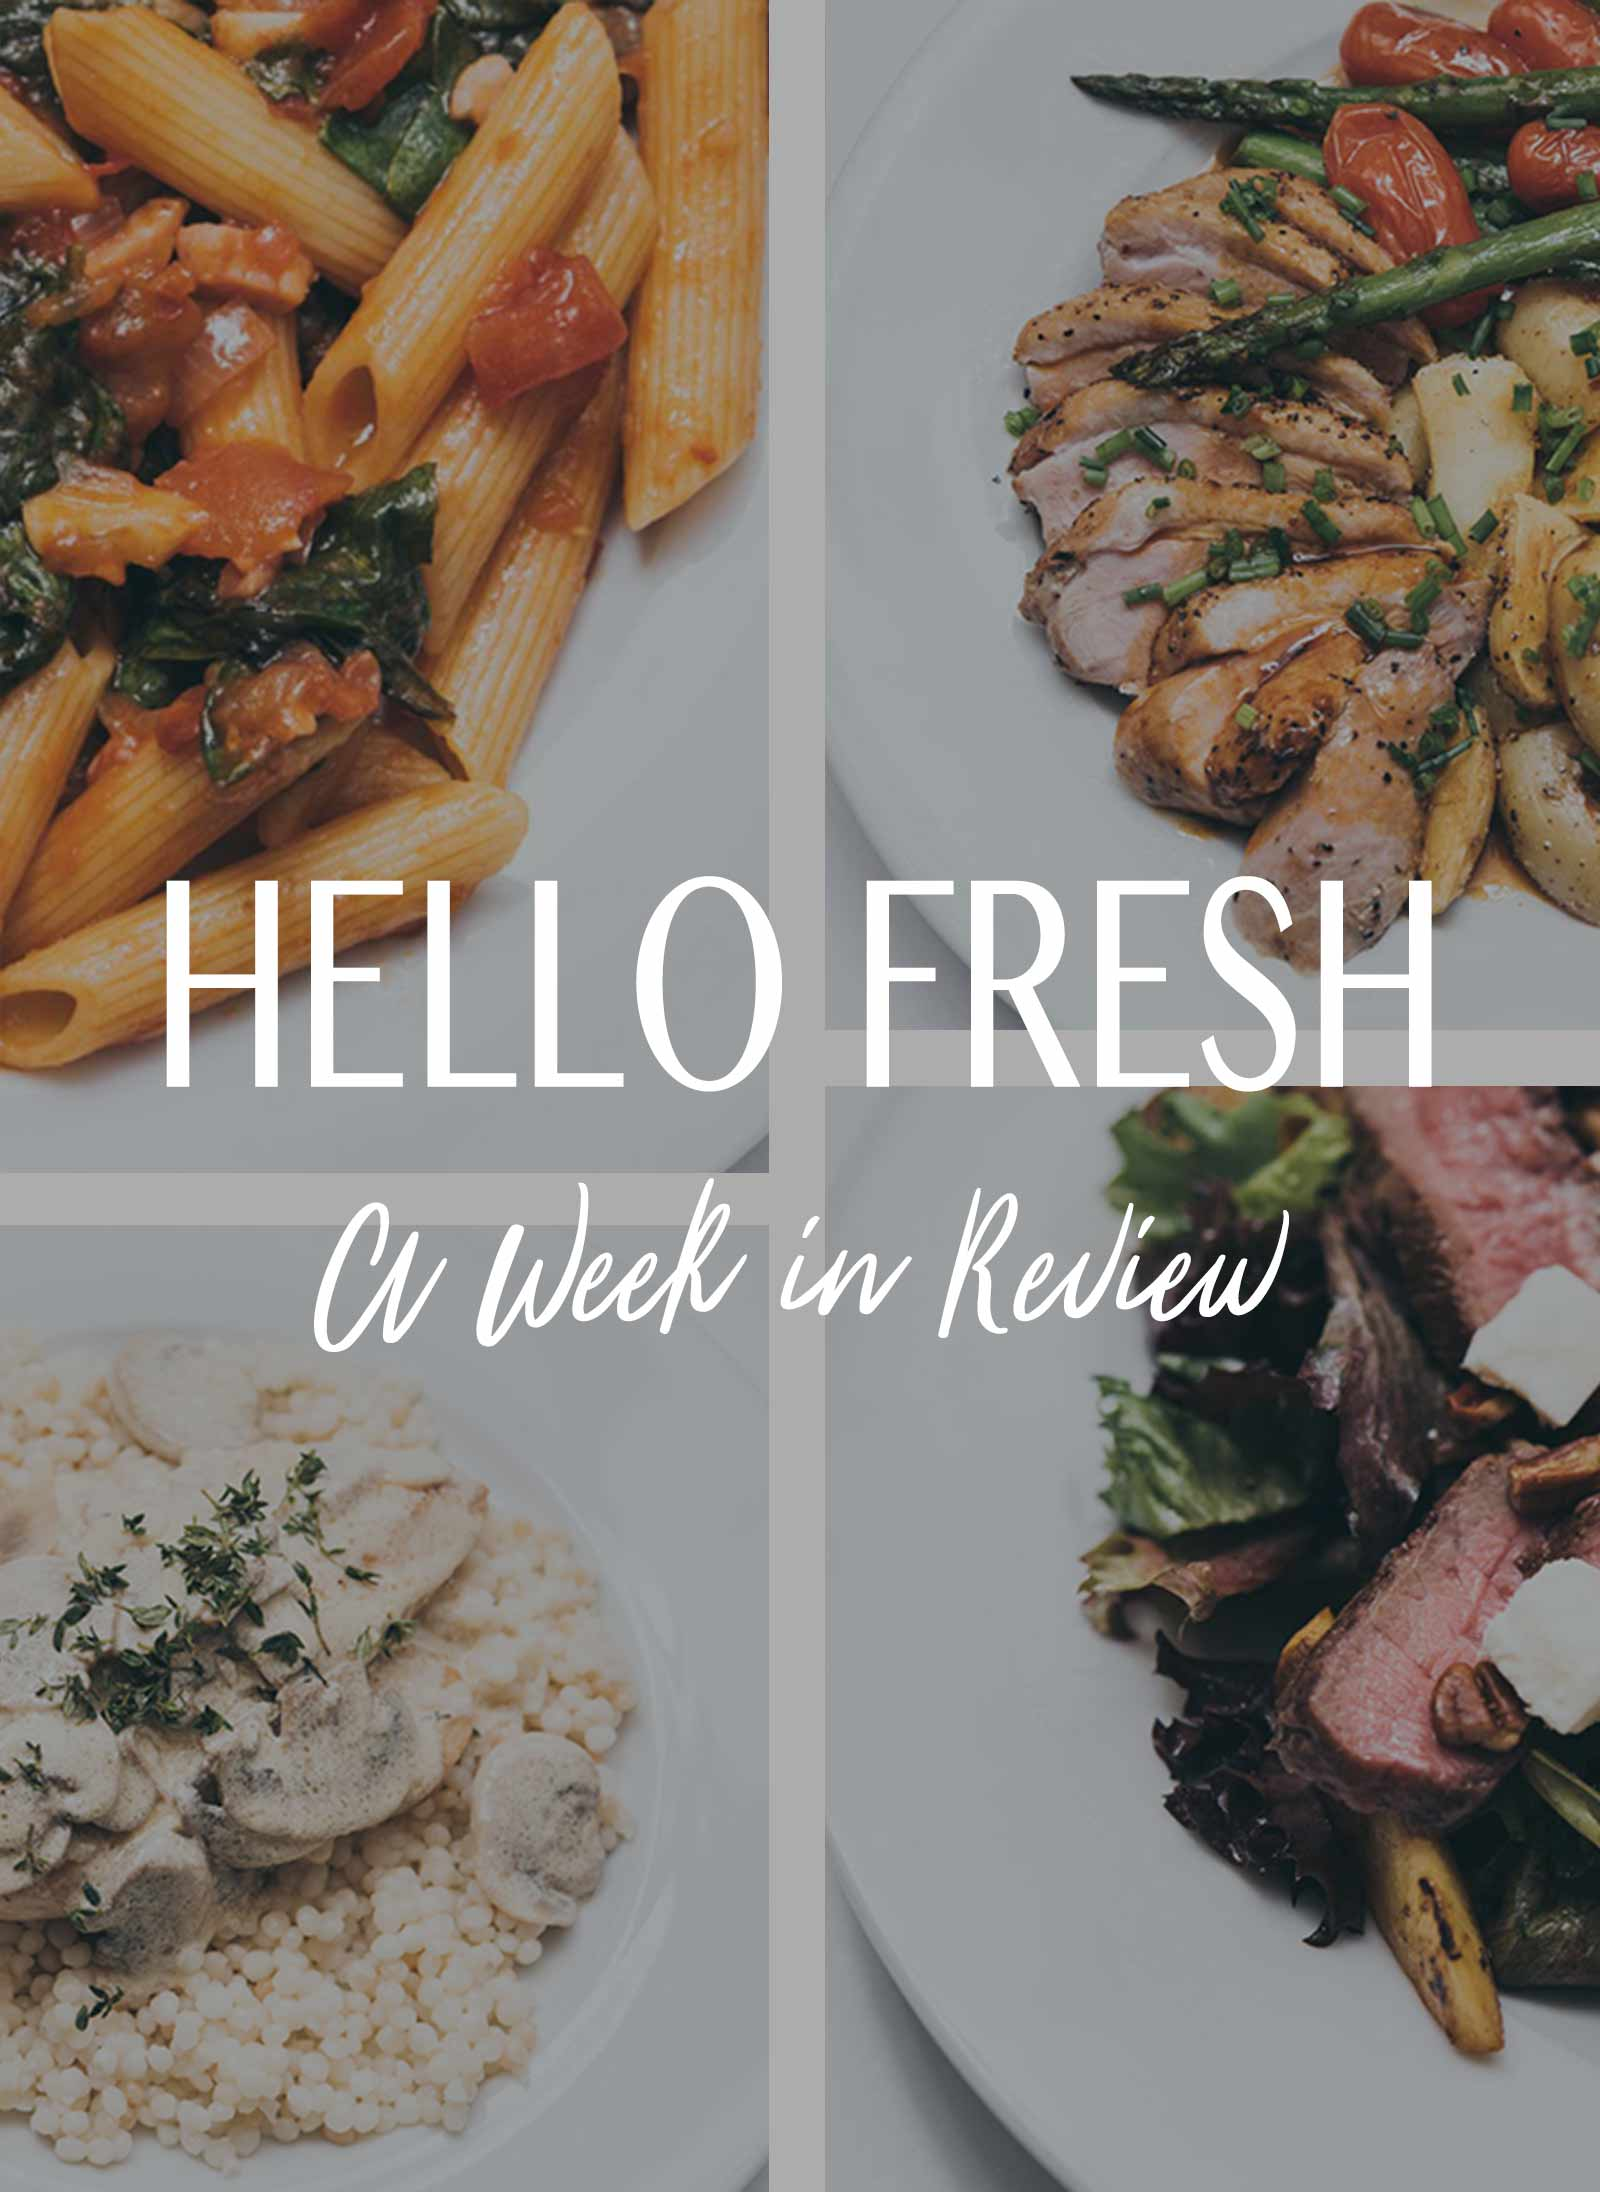 Hellofresh One Week Free